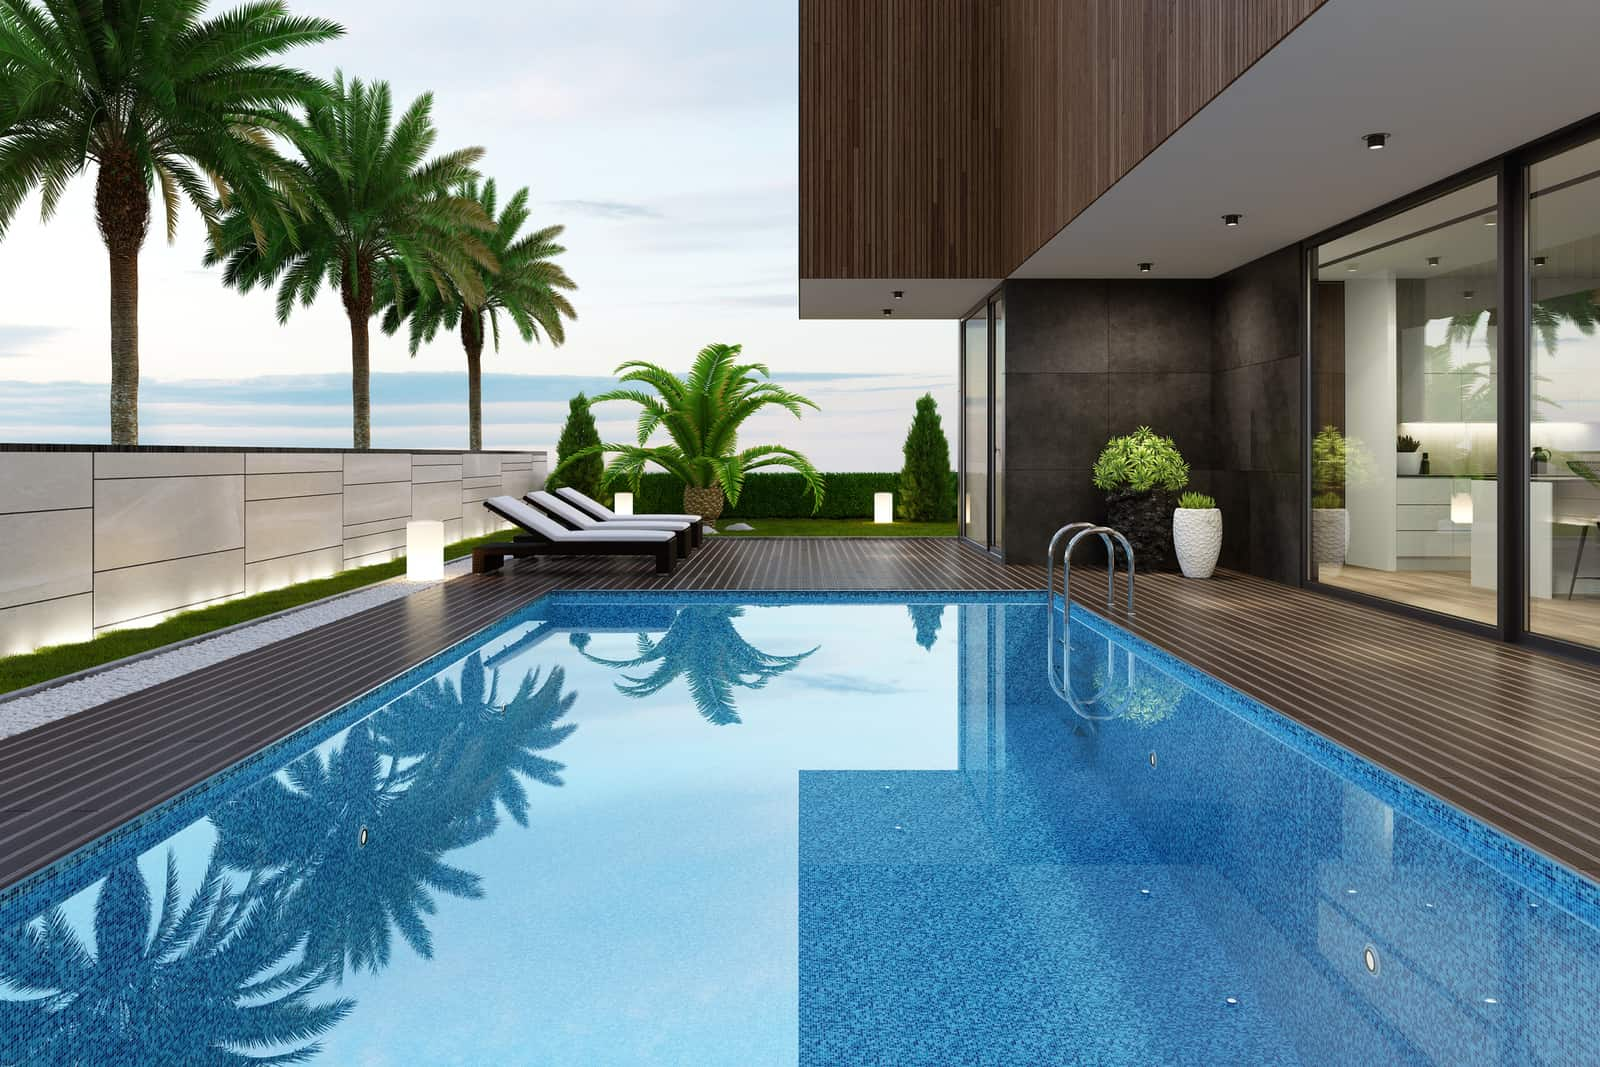 Luxurious beach side villa with swimming pool and palm trees at summer sunset scene